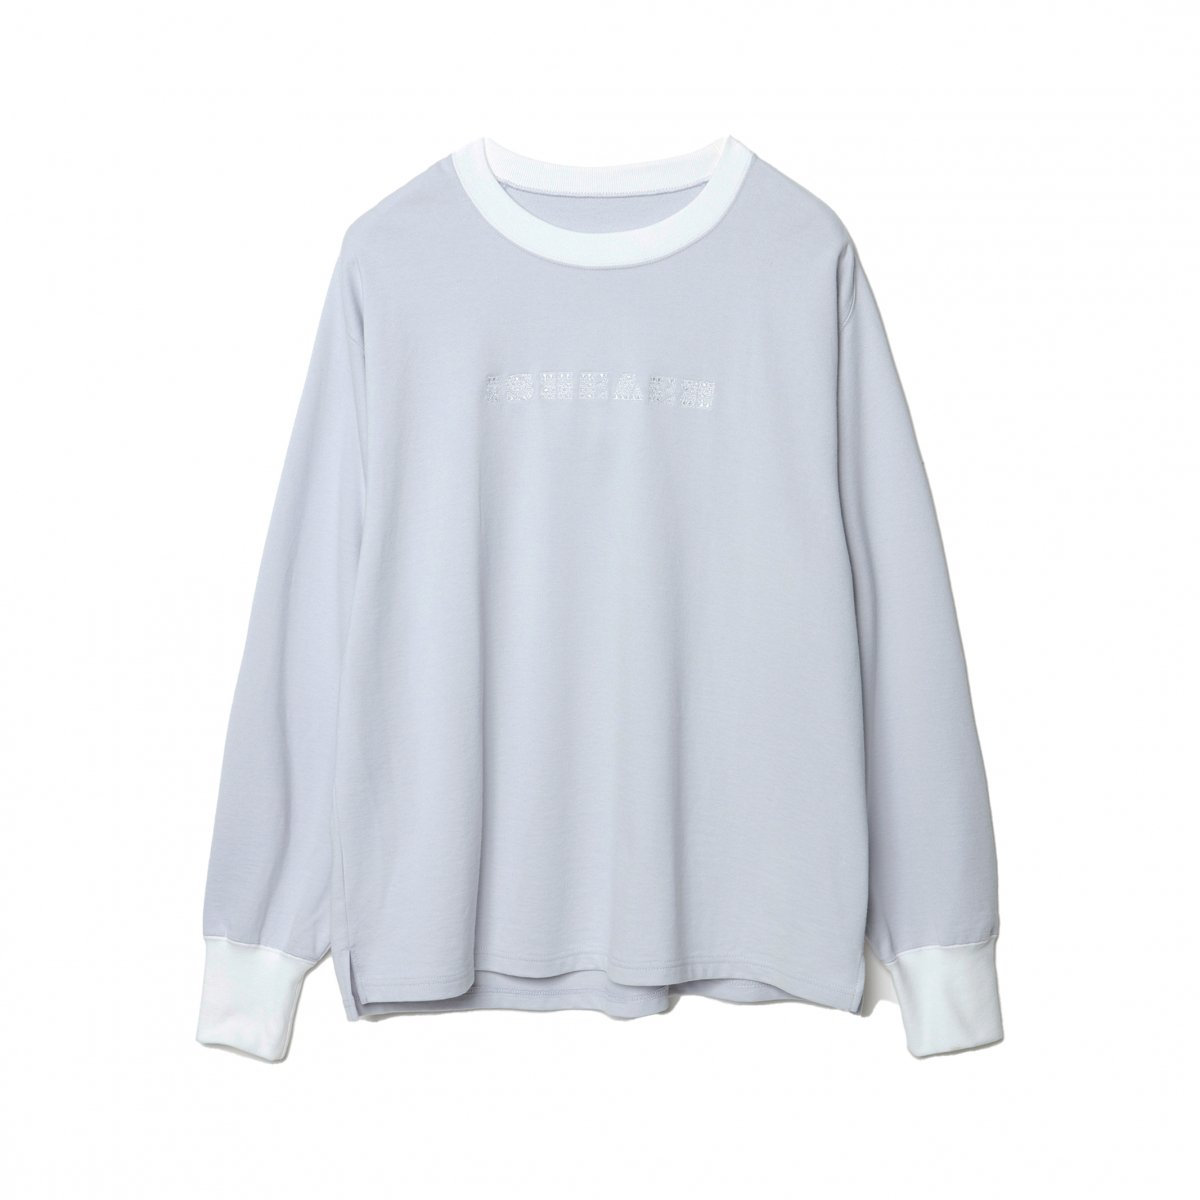 <img class='new_mark_img1' src='https://img.shop-pro.jp/img/new/icons5.gif' style='border:none;display:inline;margin:0px;padding:0px;width:auto;' />COMPACT RICH FLEECE LOGO TEE / IVORY